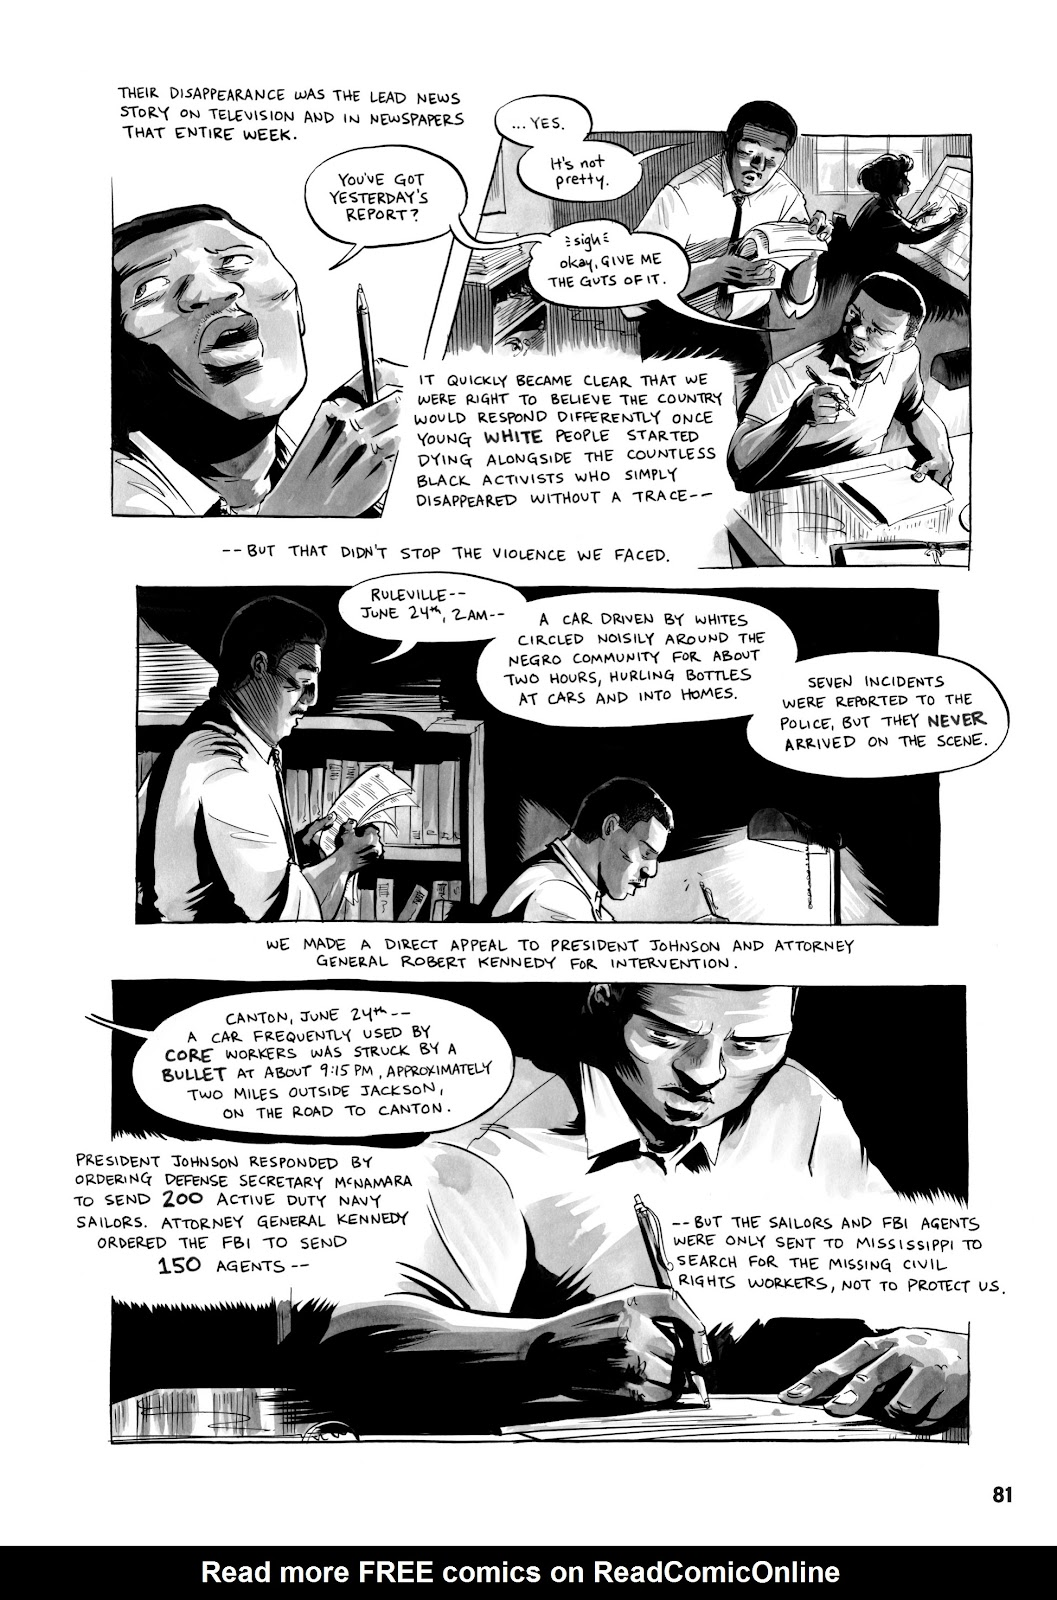 March 3 Page 78